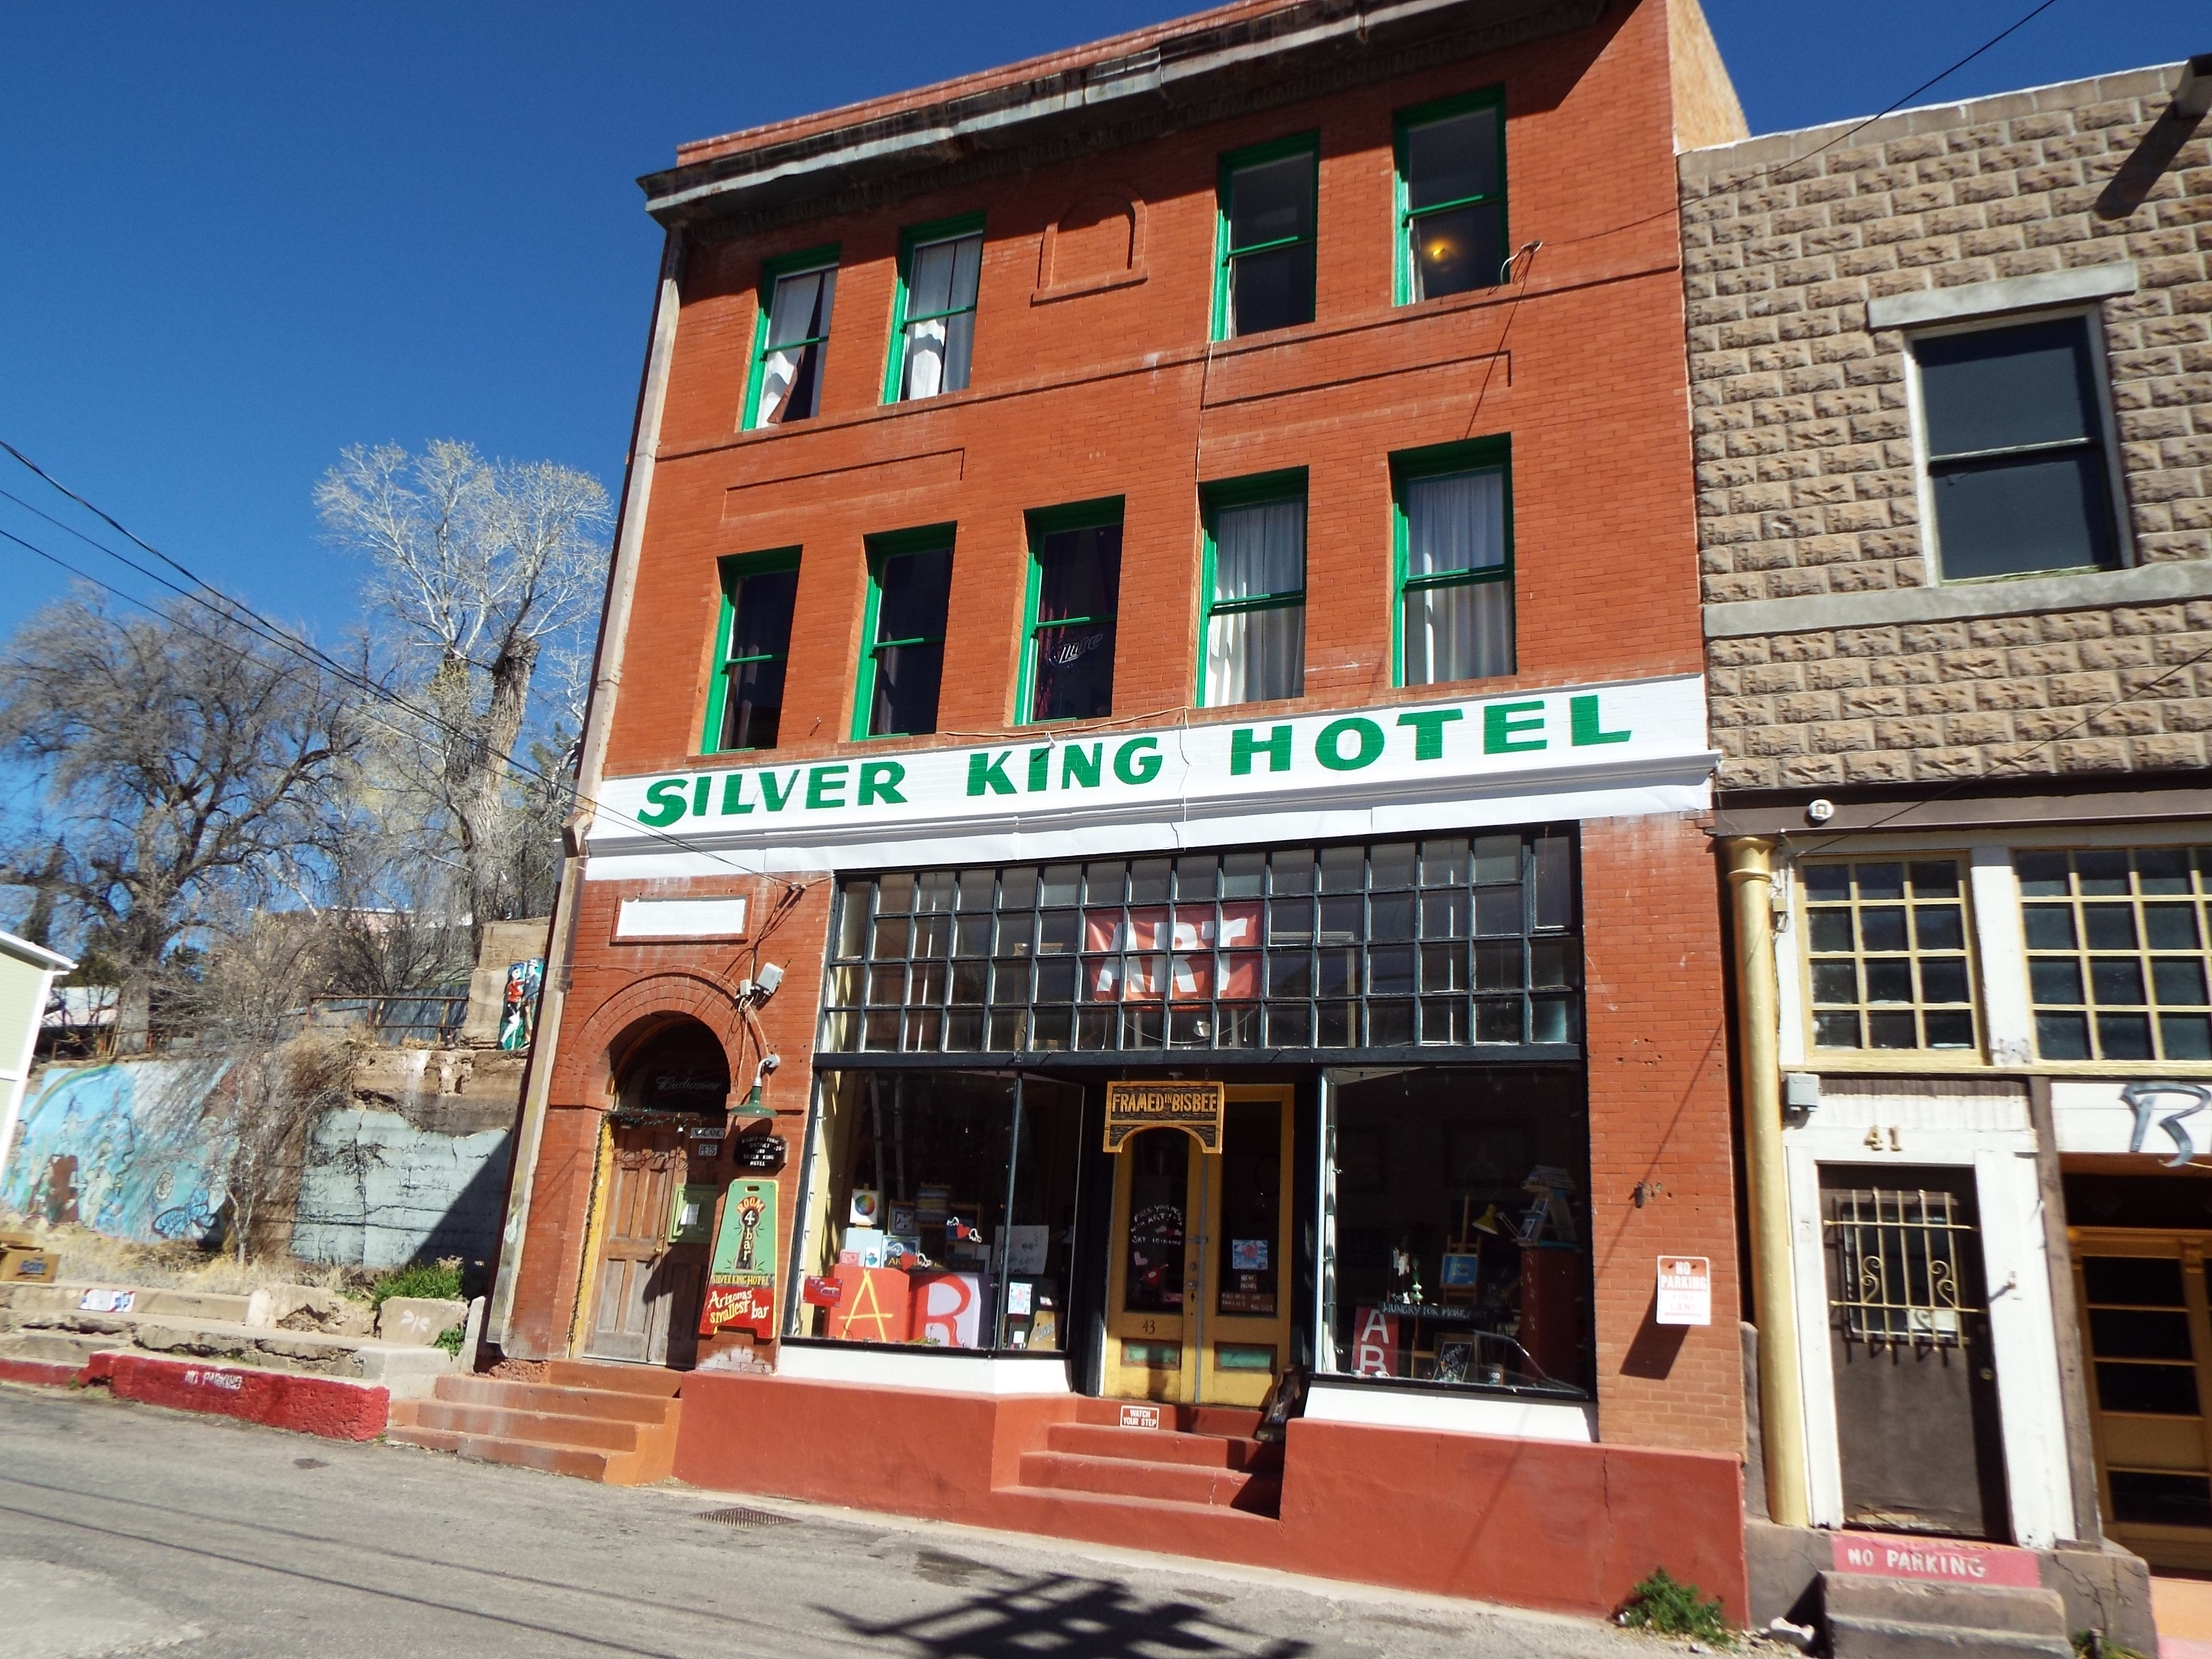 file:bisbee-silver king hotel-1900 - wikimedia commons